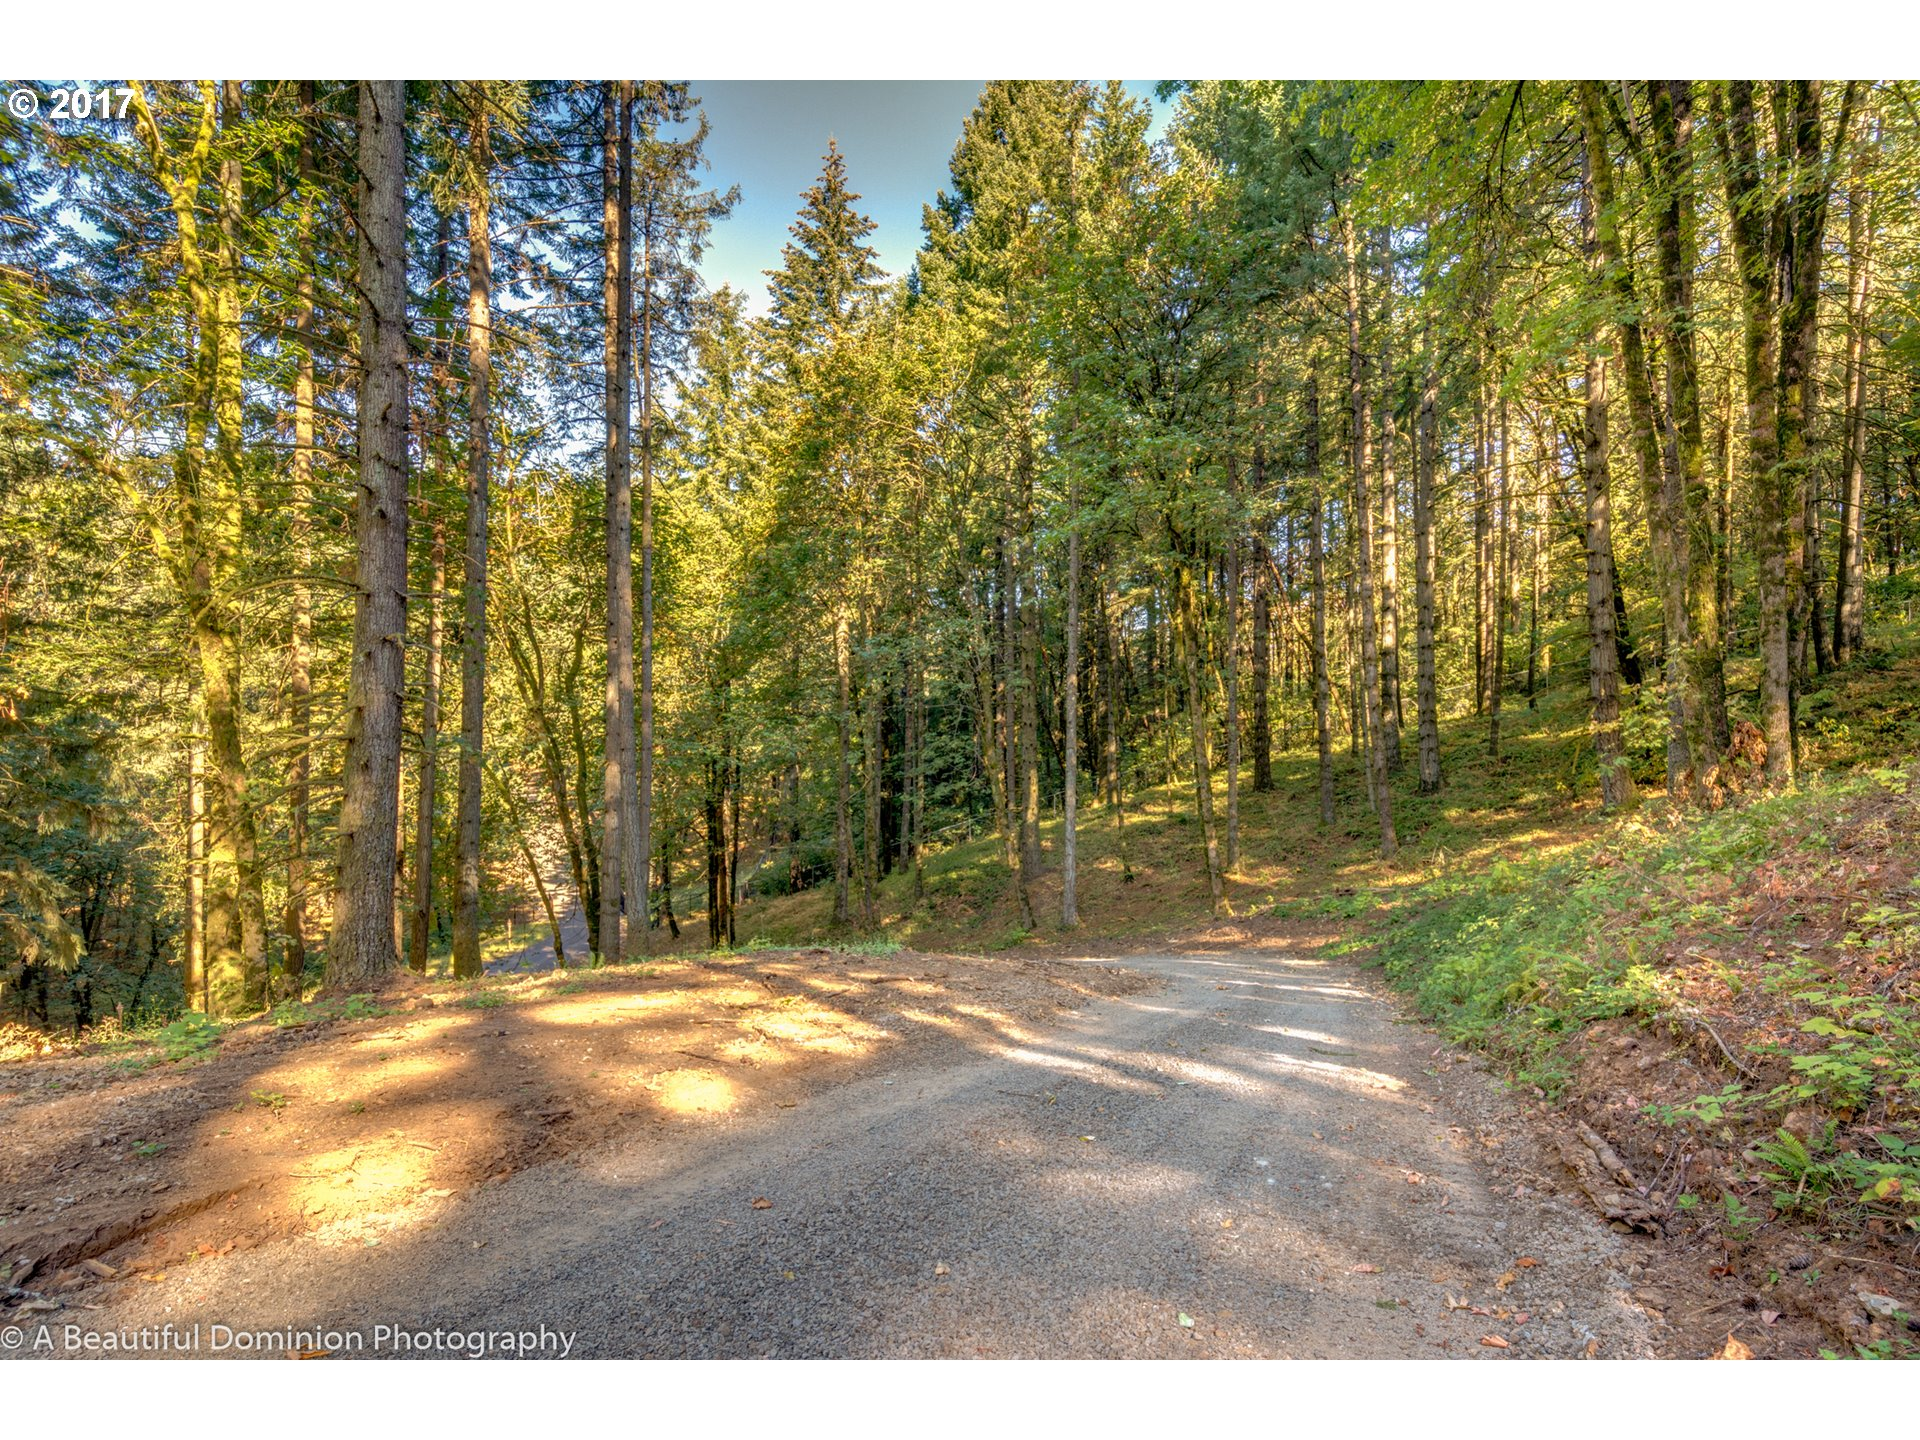 Estate-sized parcels 3 available to build out. This 4.24 acre  parcel has an installed utility vault for electric/gas/phone utility connect and graded drive to potential building site. Approved for standard septic system that will need update at the time of applying for final building permit.  Well at adjacent parcel provides 40 to 50 GPM. Beautiful private location.